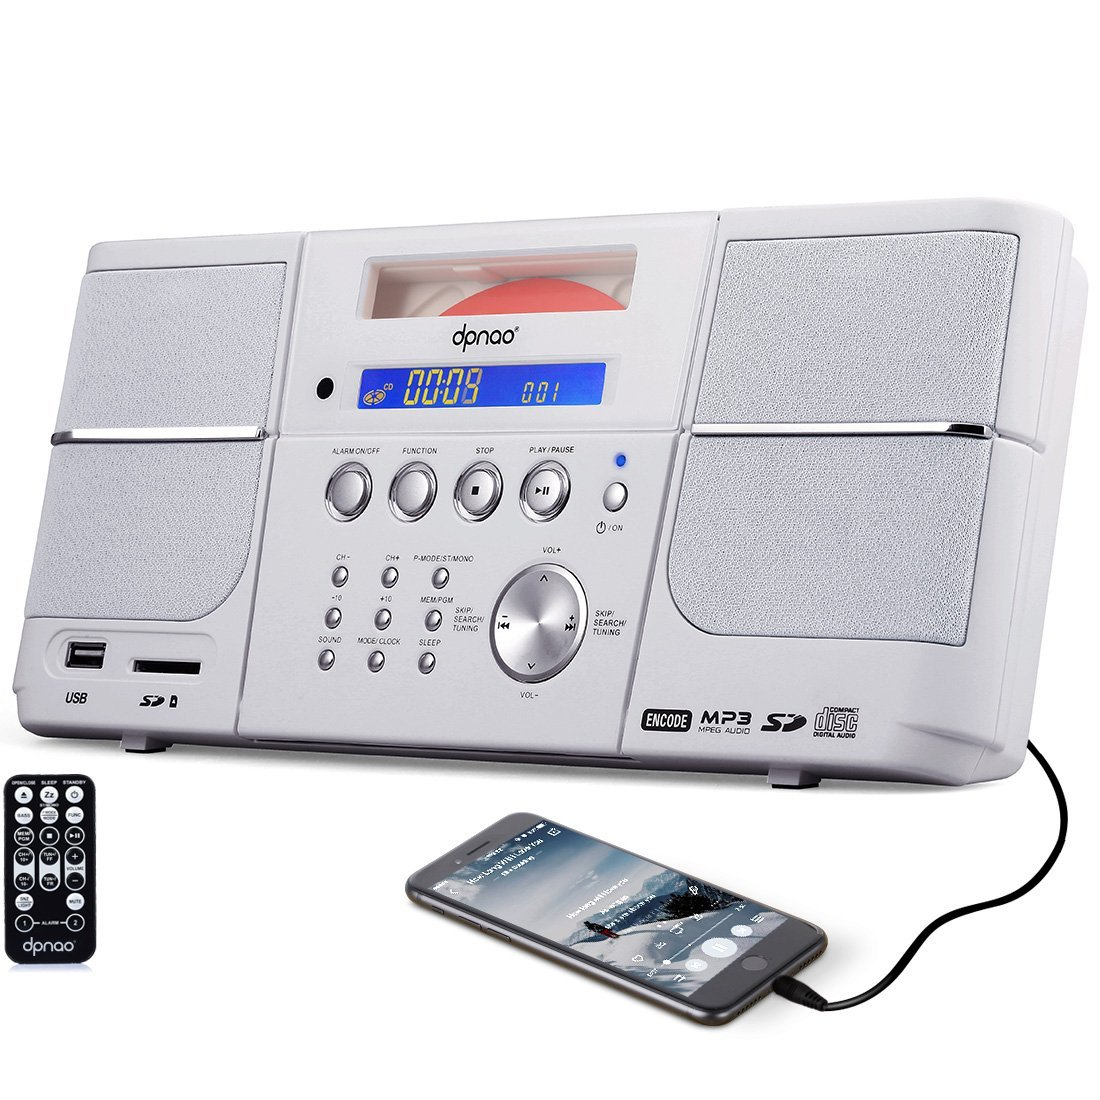 DPNAO CD Player, Portable Boombox, with FM Radio, Alarm Clock, USB, SD Card, AUX-In, Remote, Headphone Jack for Kids (White)